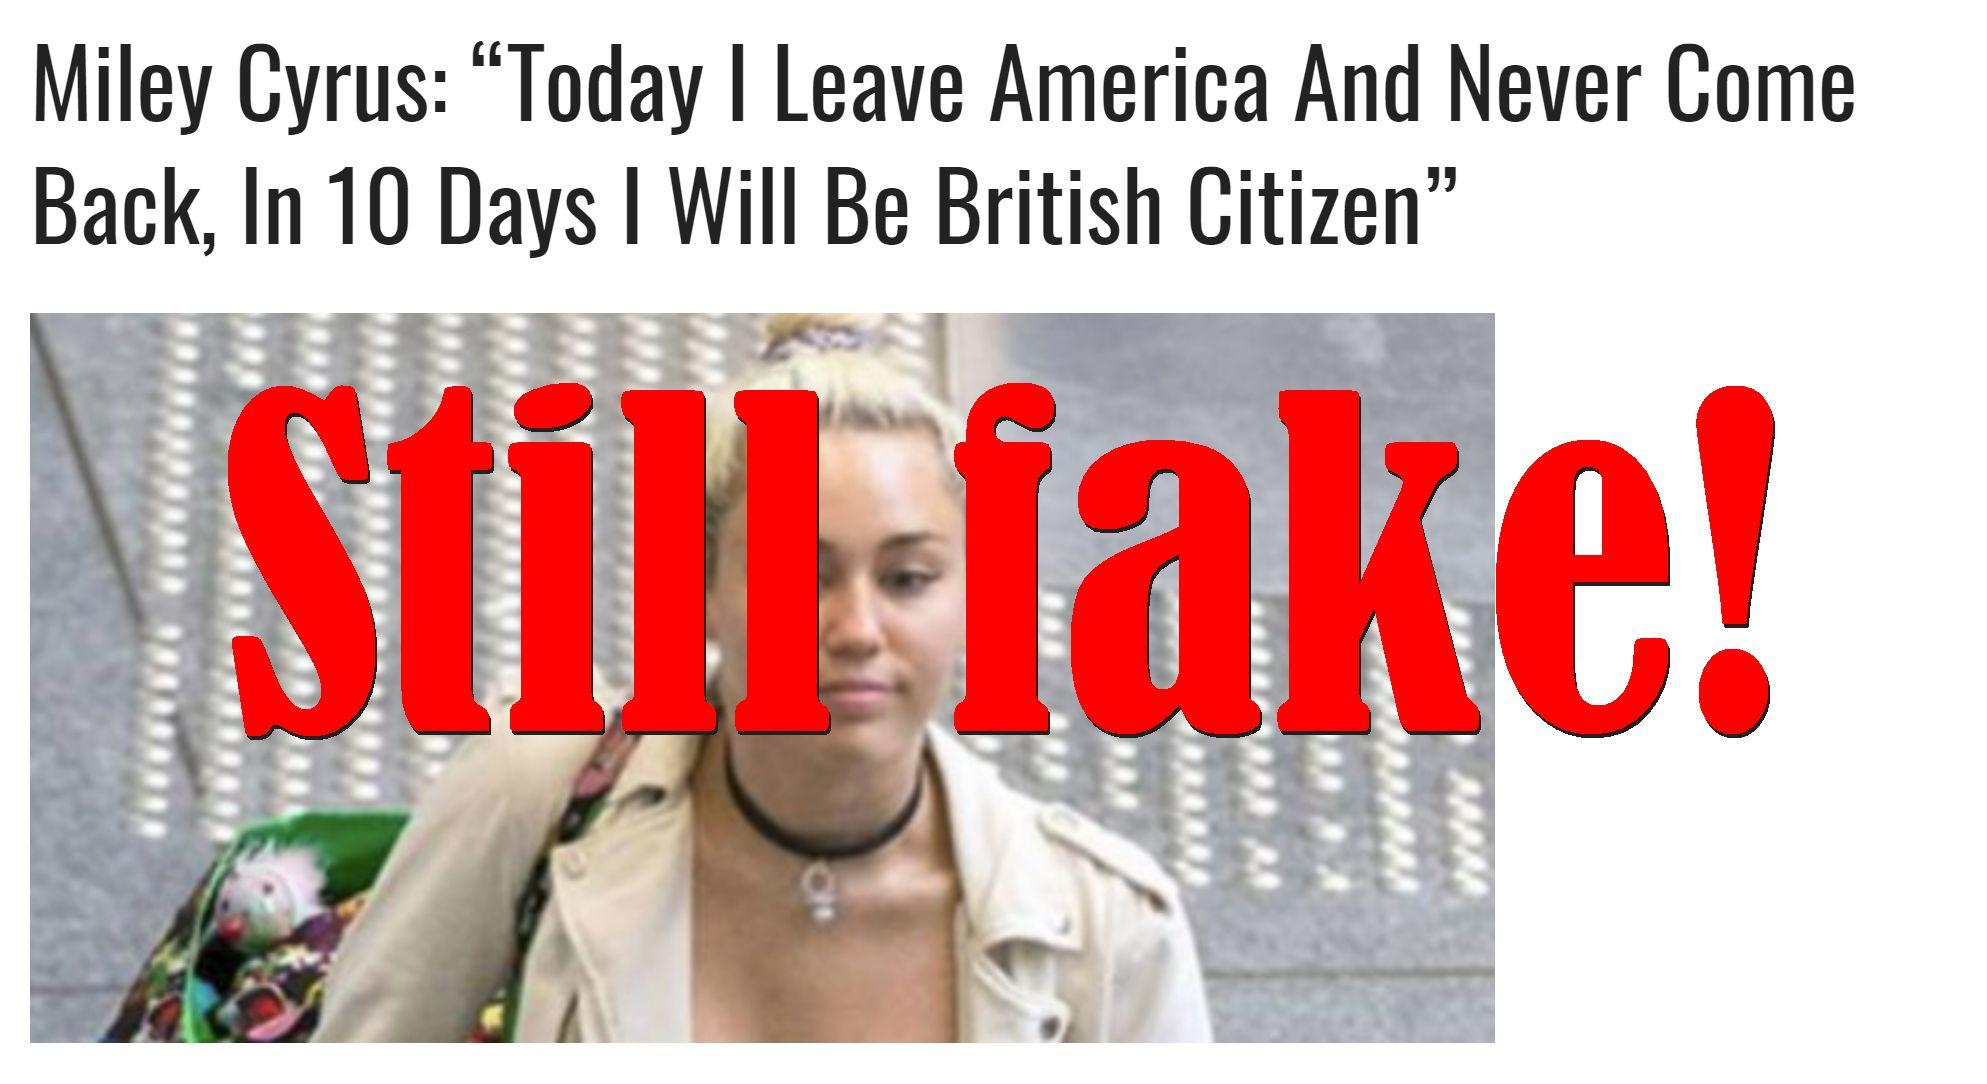 Fake News: Miley Cyrus Not Leaving America, Won't Become British Citizen In Ten Days